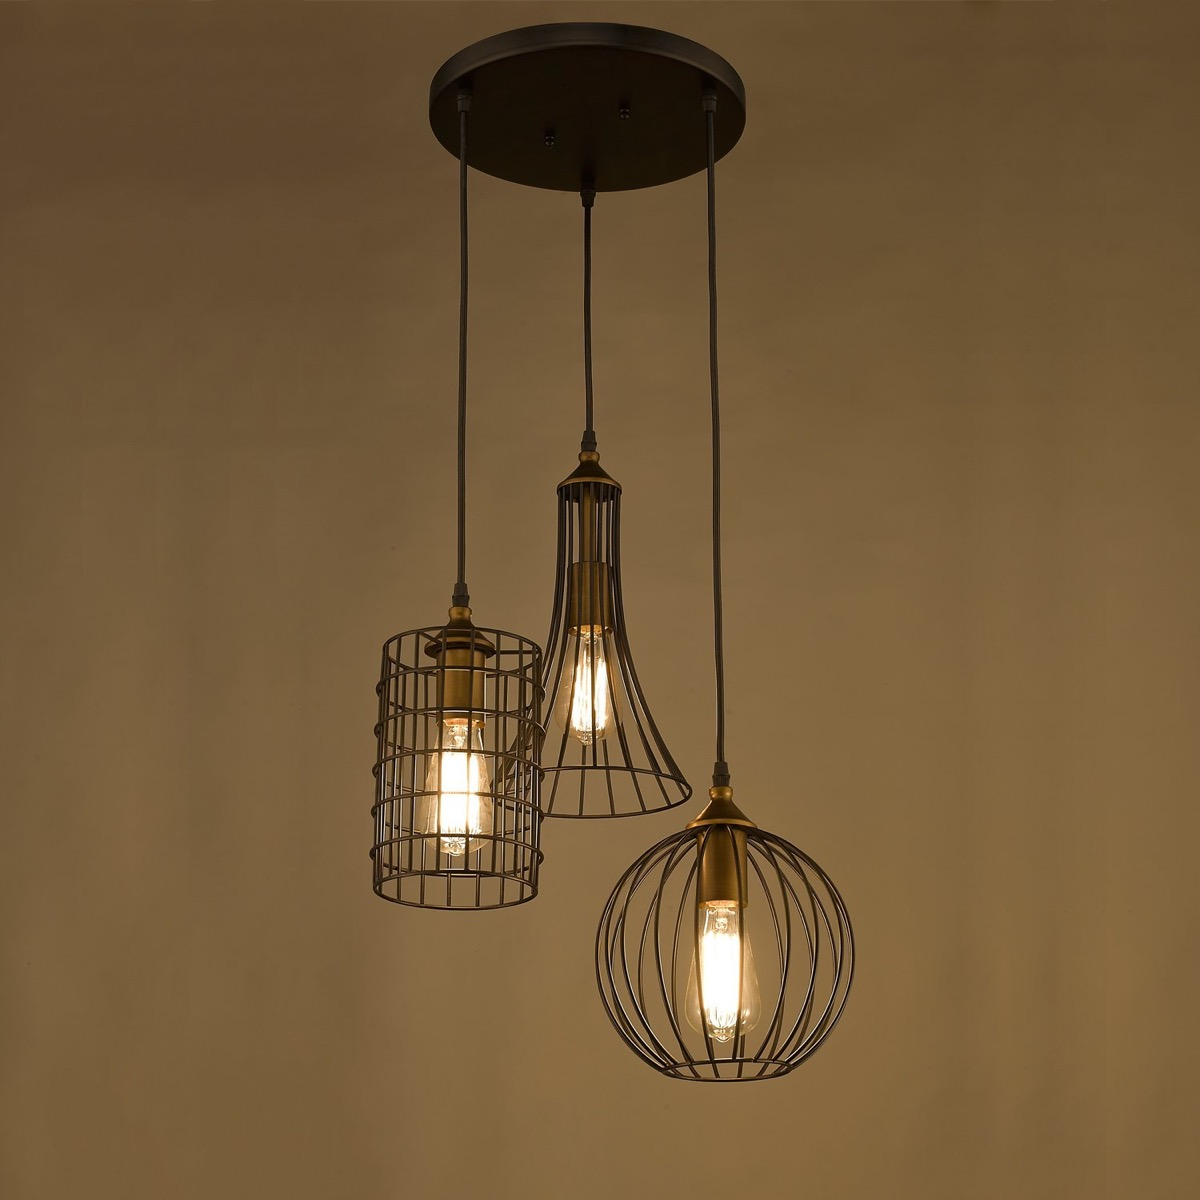 Light Store: 30 Industrial Style Lighting Fixtures To Help You Achieve